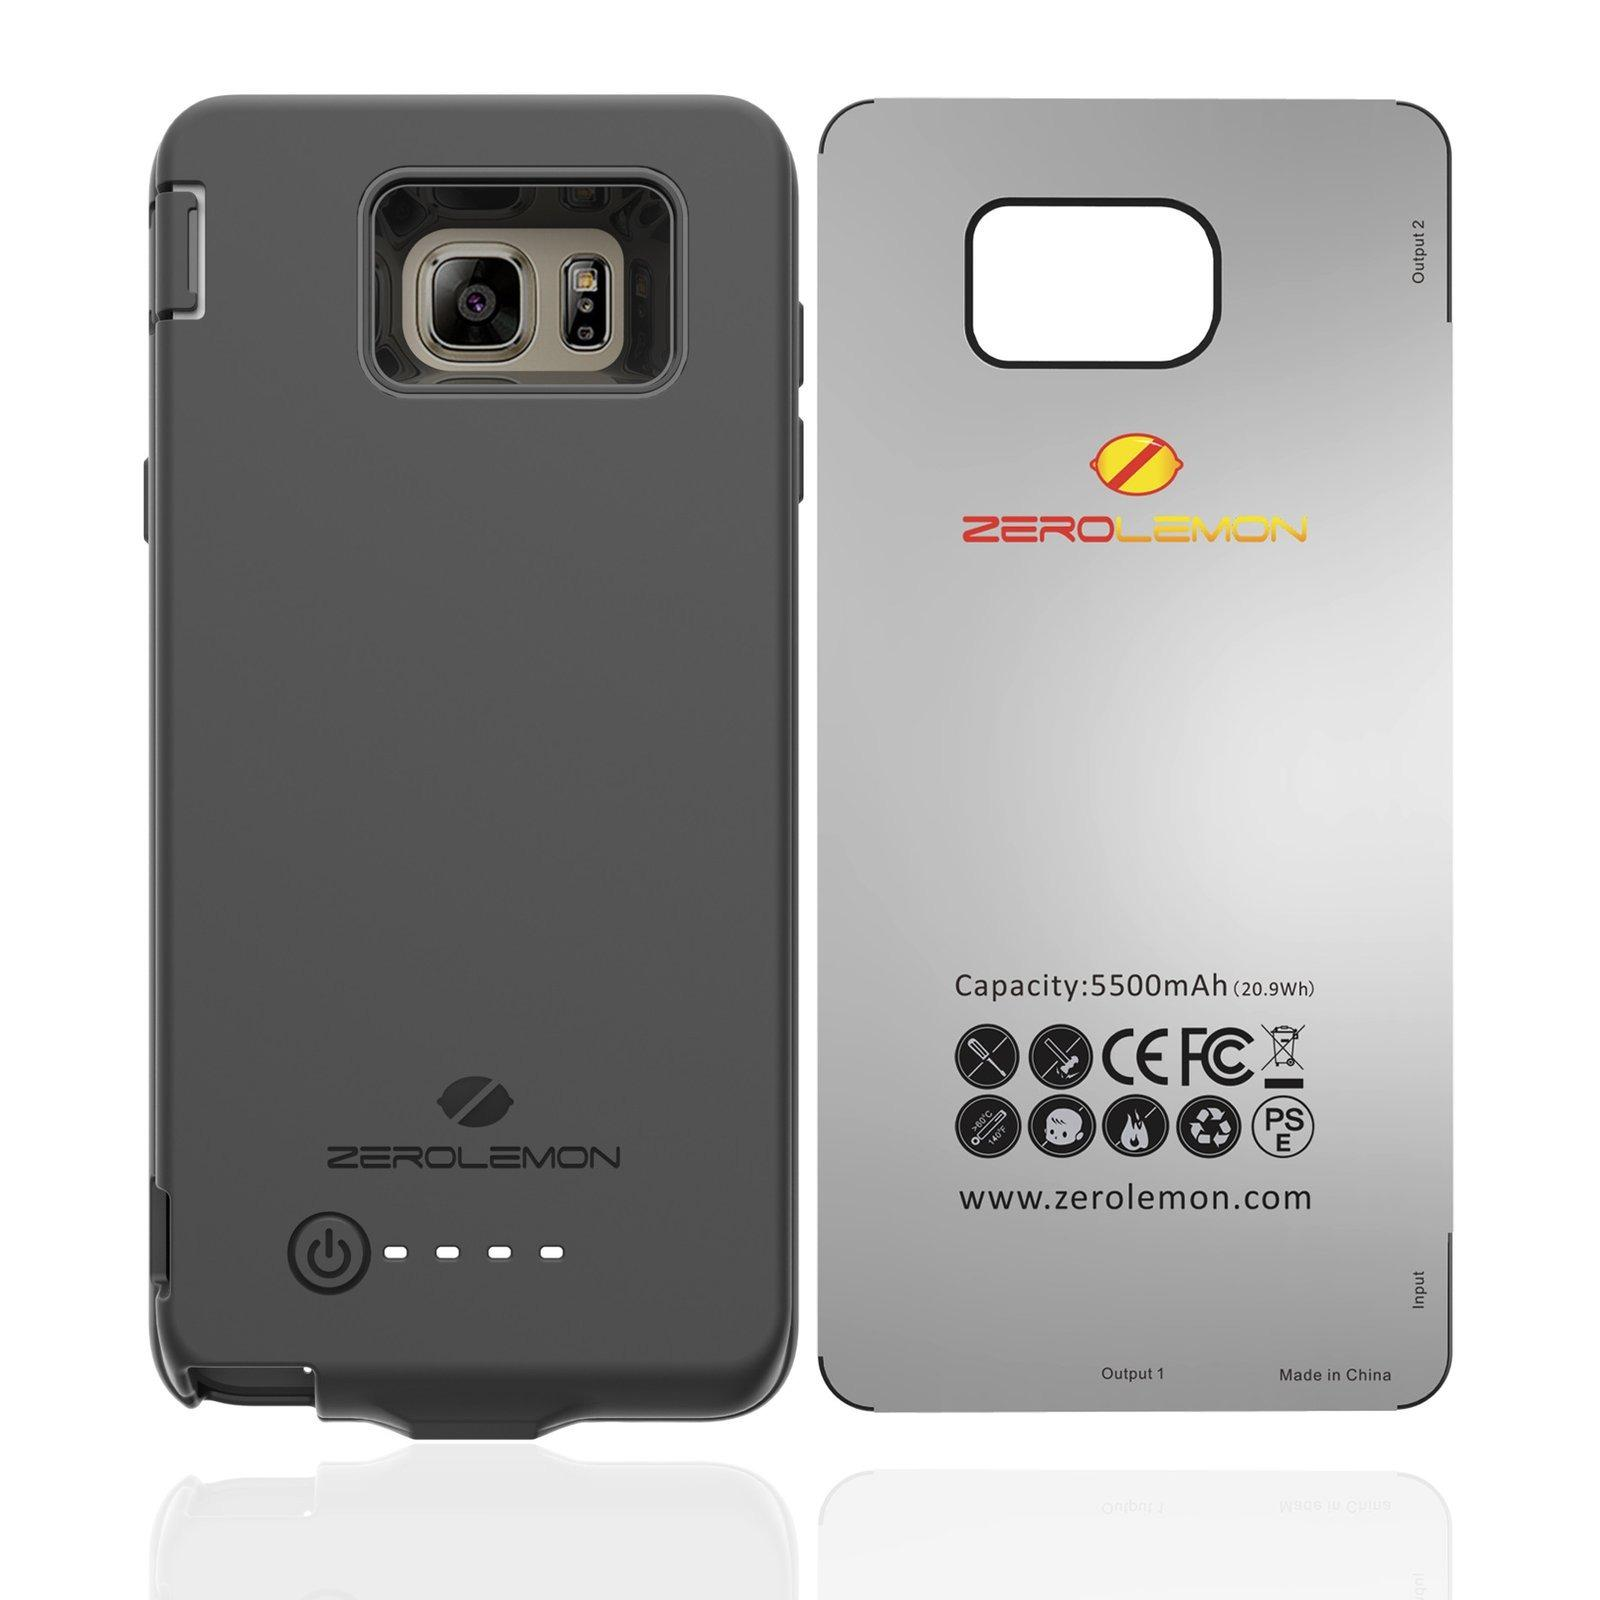 Where Can I Buy Zerolemon 5500Mah Tpu Battery Case For Samsung Galaxy Note 5